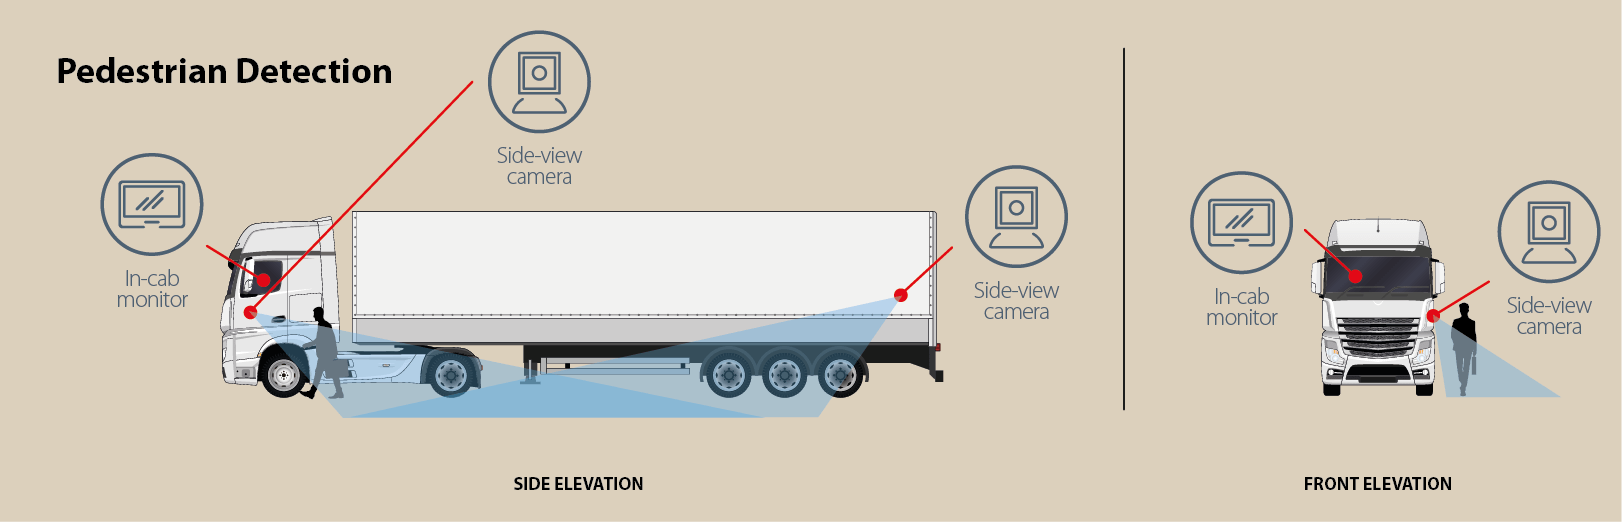 Spillard Human Detection System is the technological answer to safer driver and pedestrian co-existence. - HGV HDS diagram WEB Pedestrian 1